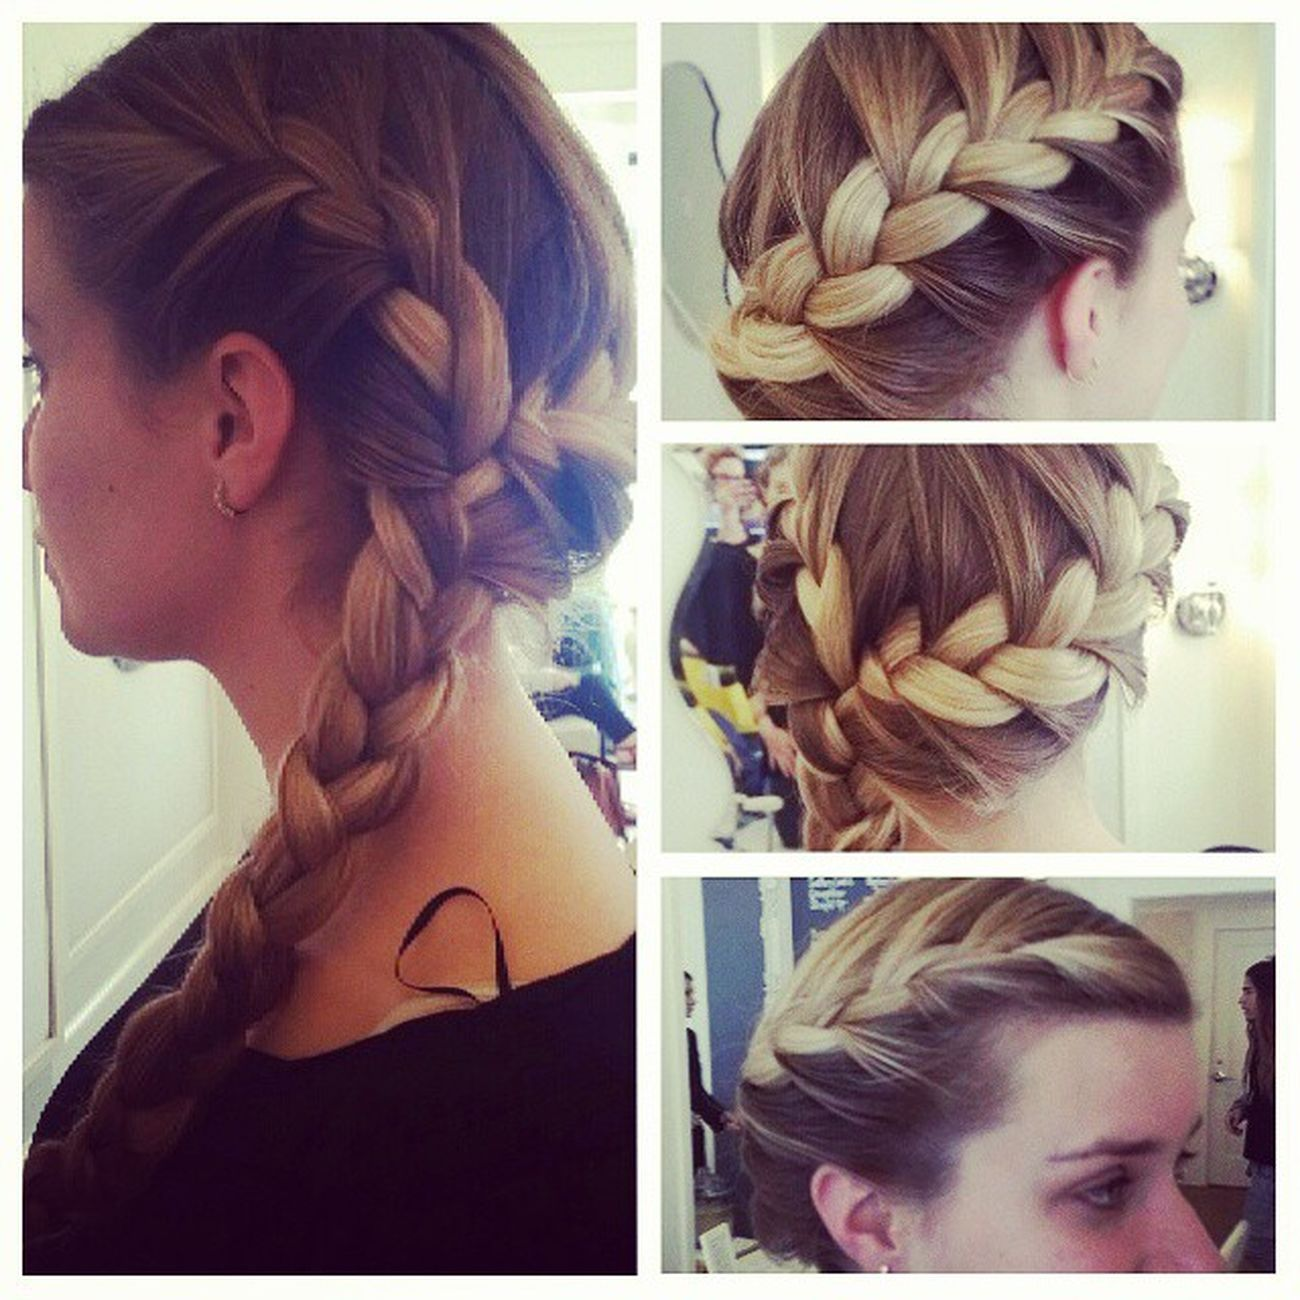 Braids braids why not braid them together. This girl has the most beautiful long naturally curly hair and blond... GoldenGlobes2015HAIR GoldenBlonde Blondehairdontcare Blonde braid Braiding btspics